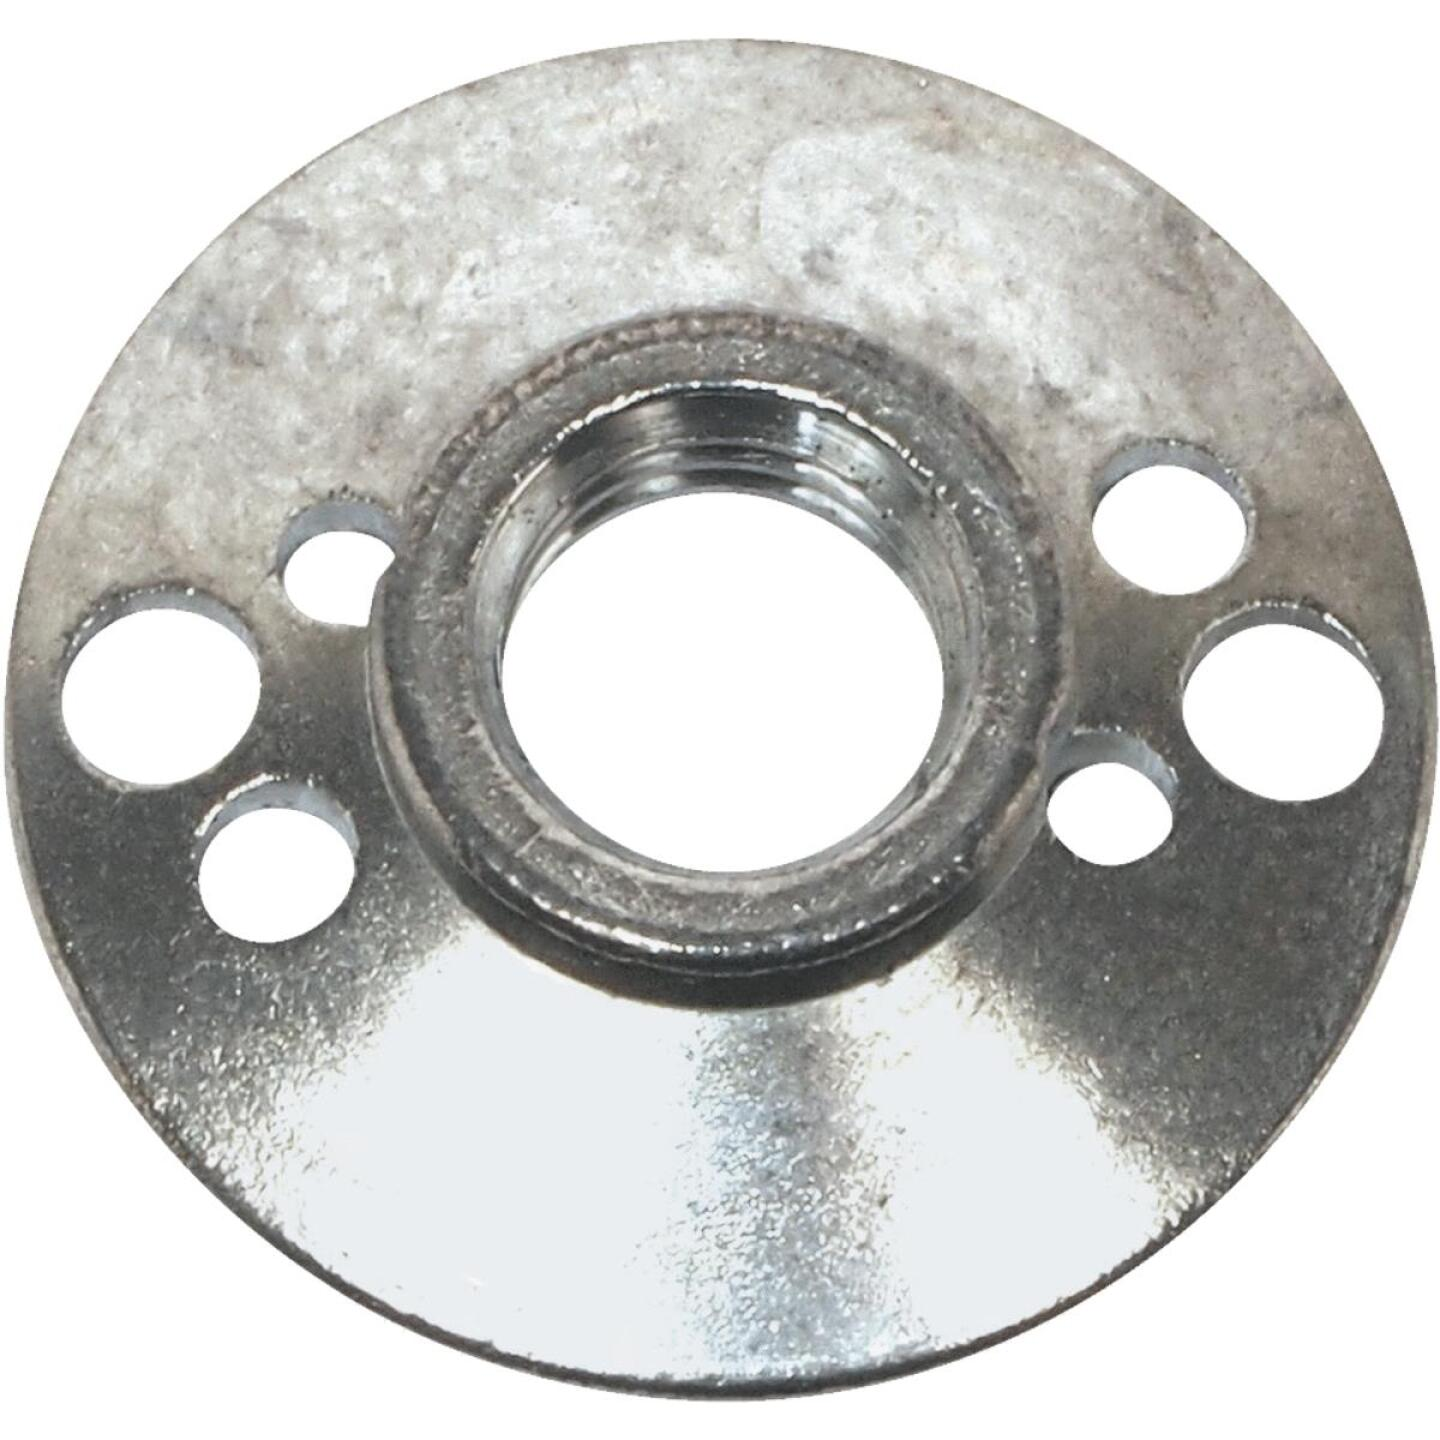 Forney 5/8 In. -11 Replacement Spindle Nut Image 1